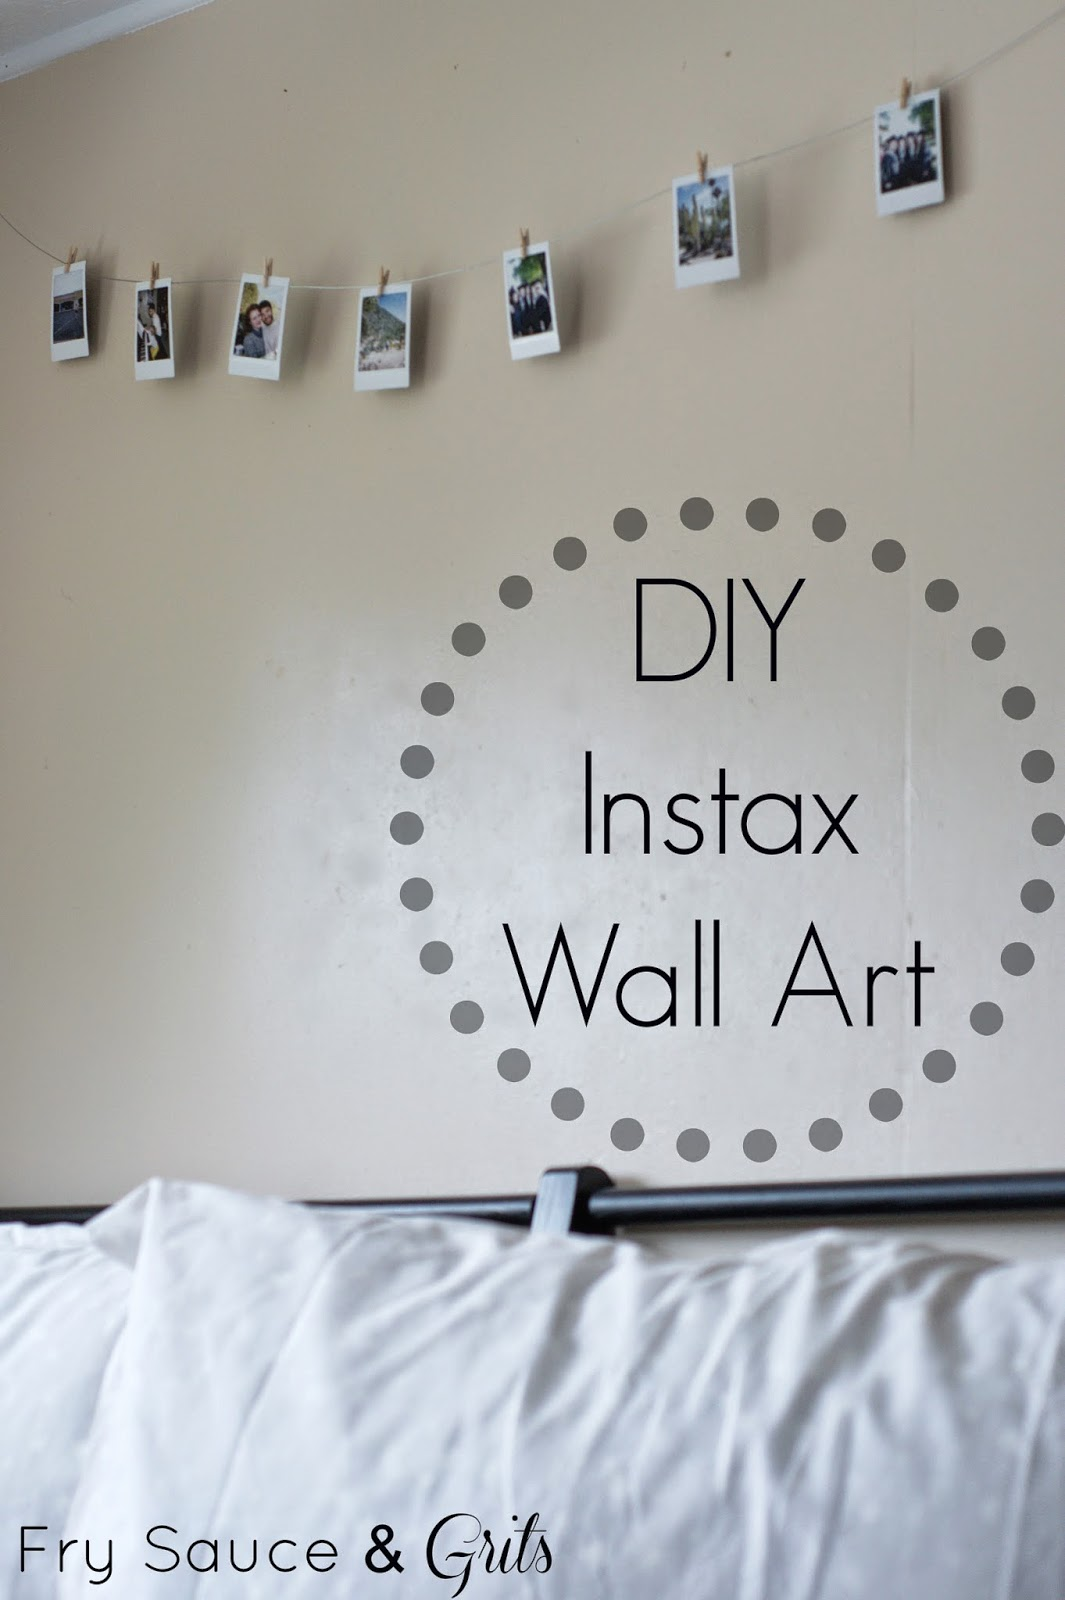 Fry Sauce and Grits Instax Wall Art